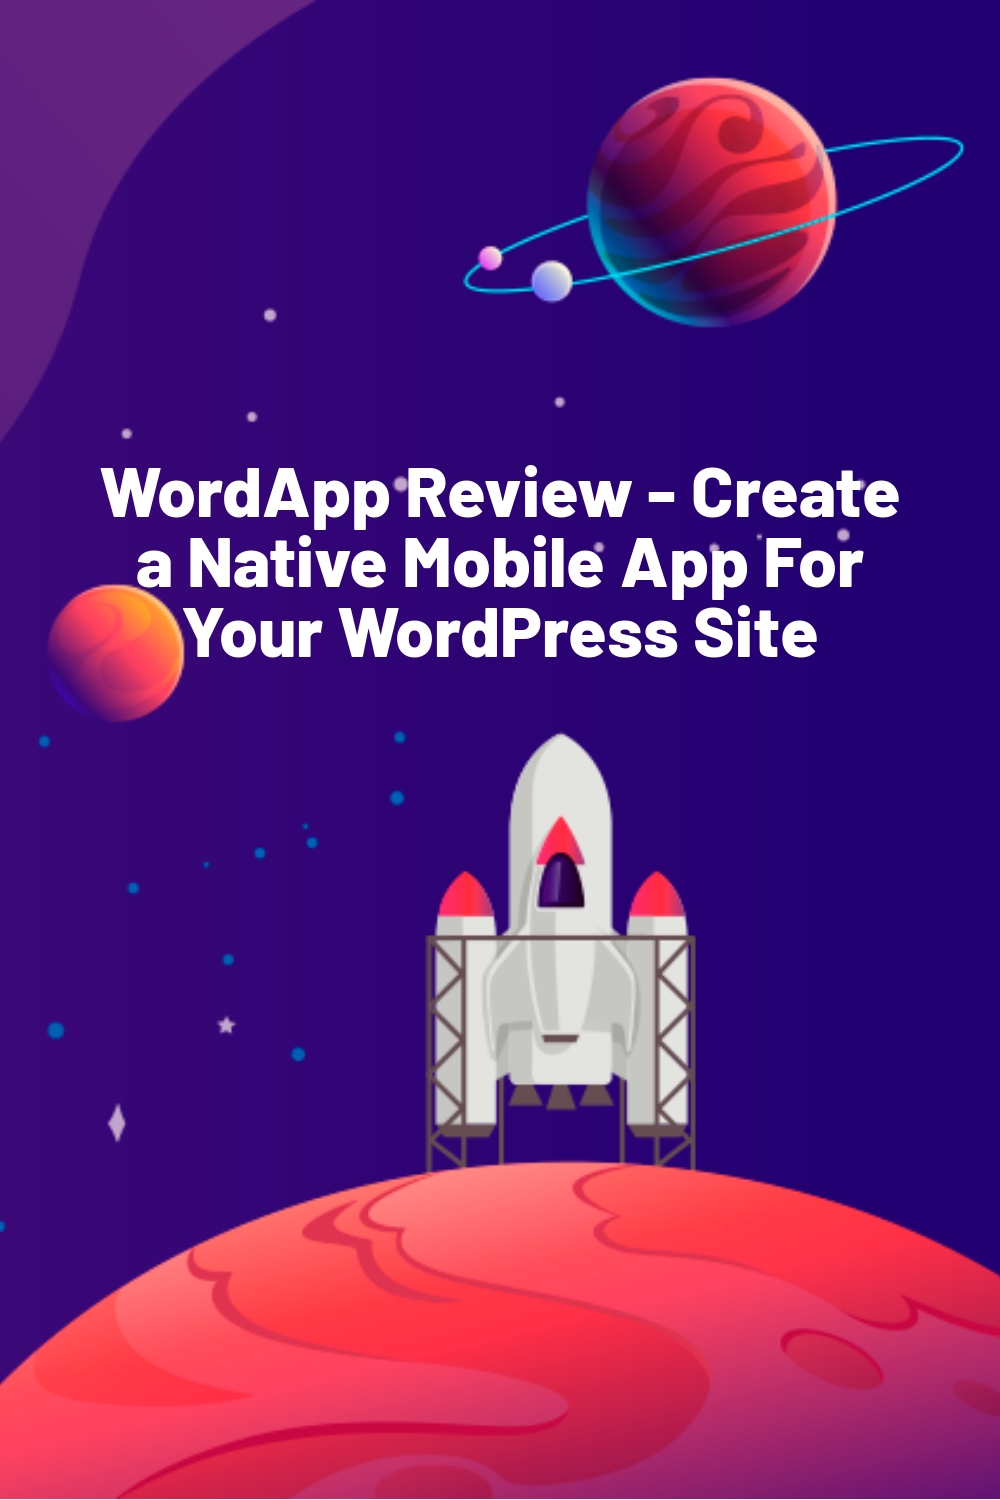 WordApp Review – Create a Native Mobile App For Your WordPress Site